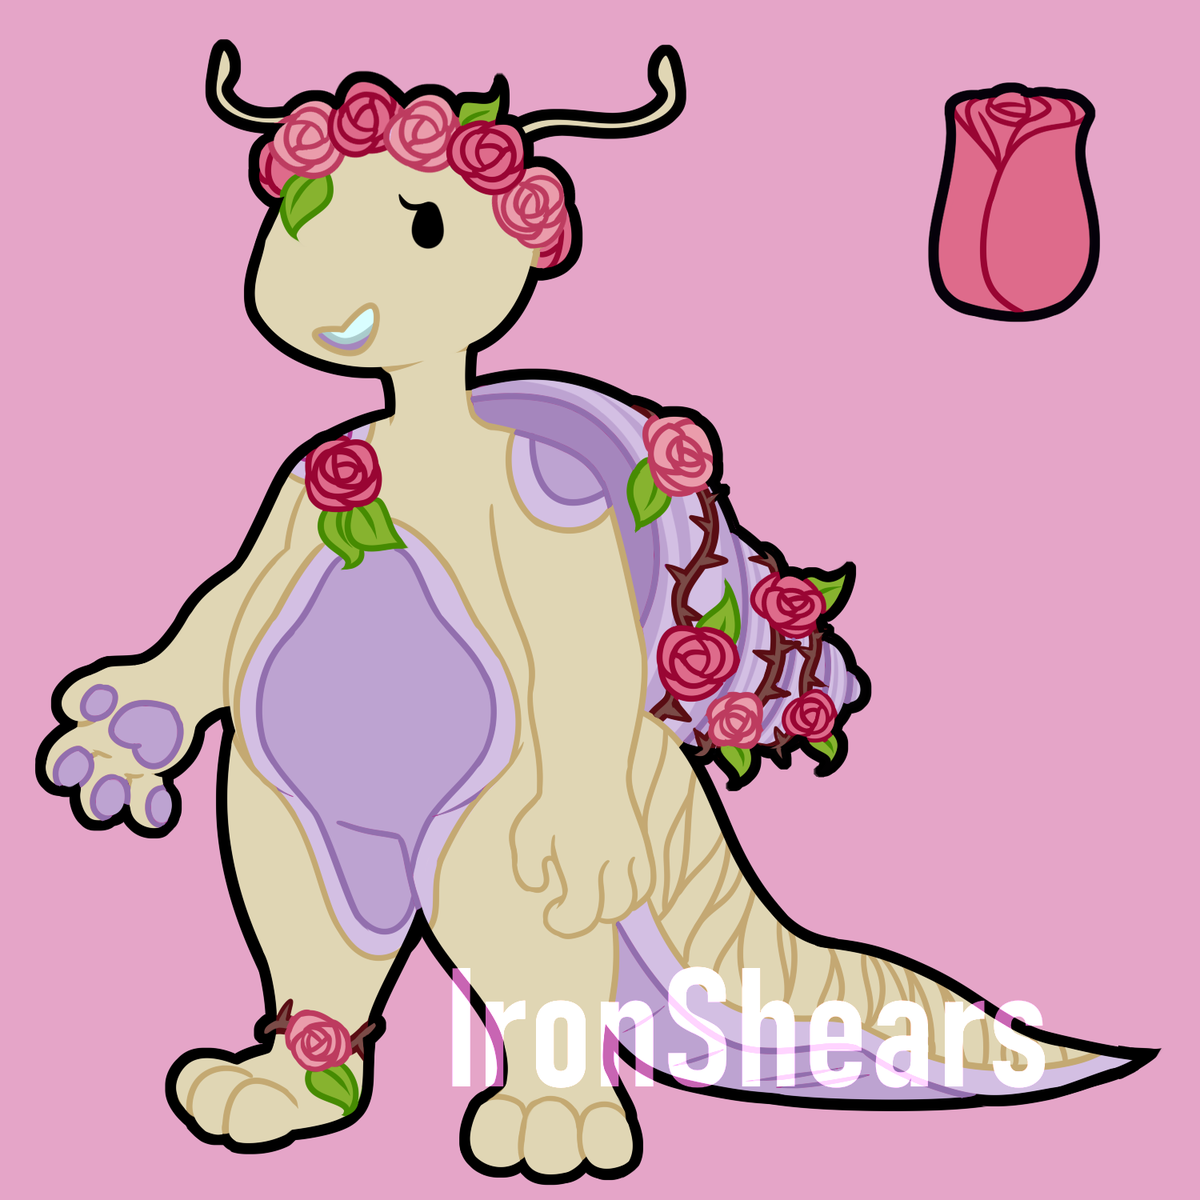 I still have another raffle going for my merman but I JUST found out about the raffles on a site so I decided to try it out with a snail puppy design! https://raffles.commishes.com/raffle/show/1U/rosethorn-snail-puppy-adopt/ … #adopts #adopt #snailpuppies #adoptable #adoptables #raffle #artraffle #adoptraffle pic.twitter.com/wGLvSasHQ1